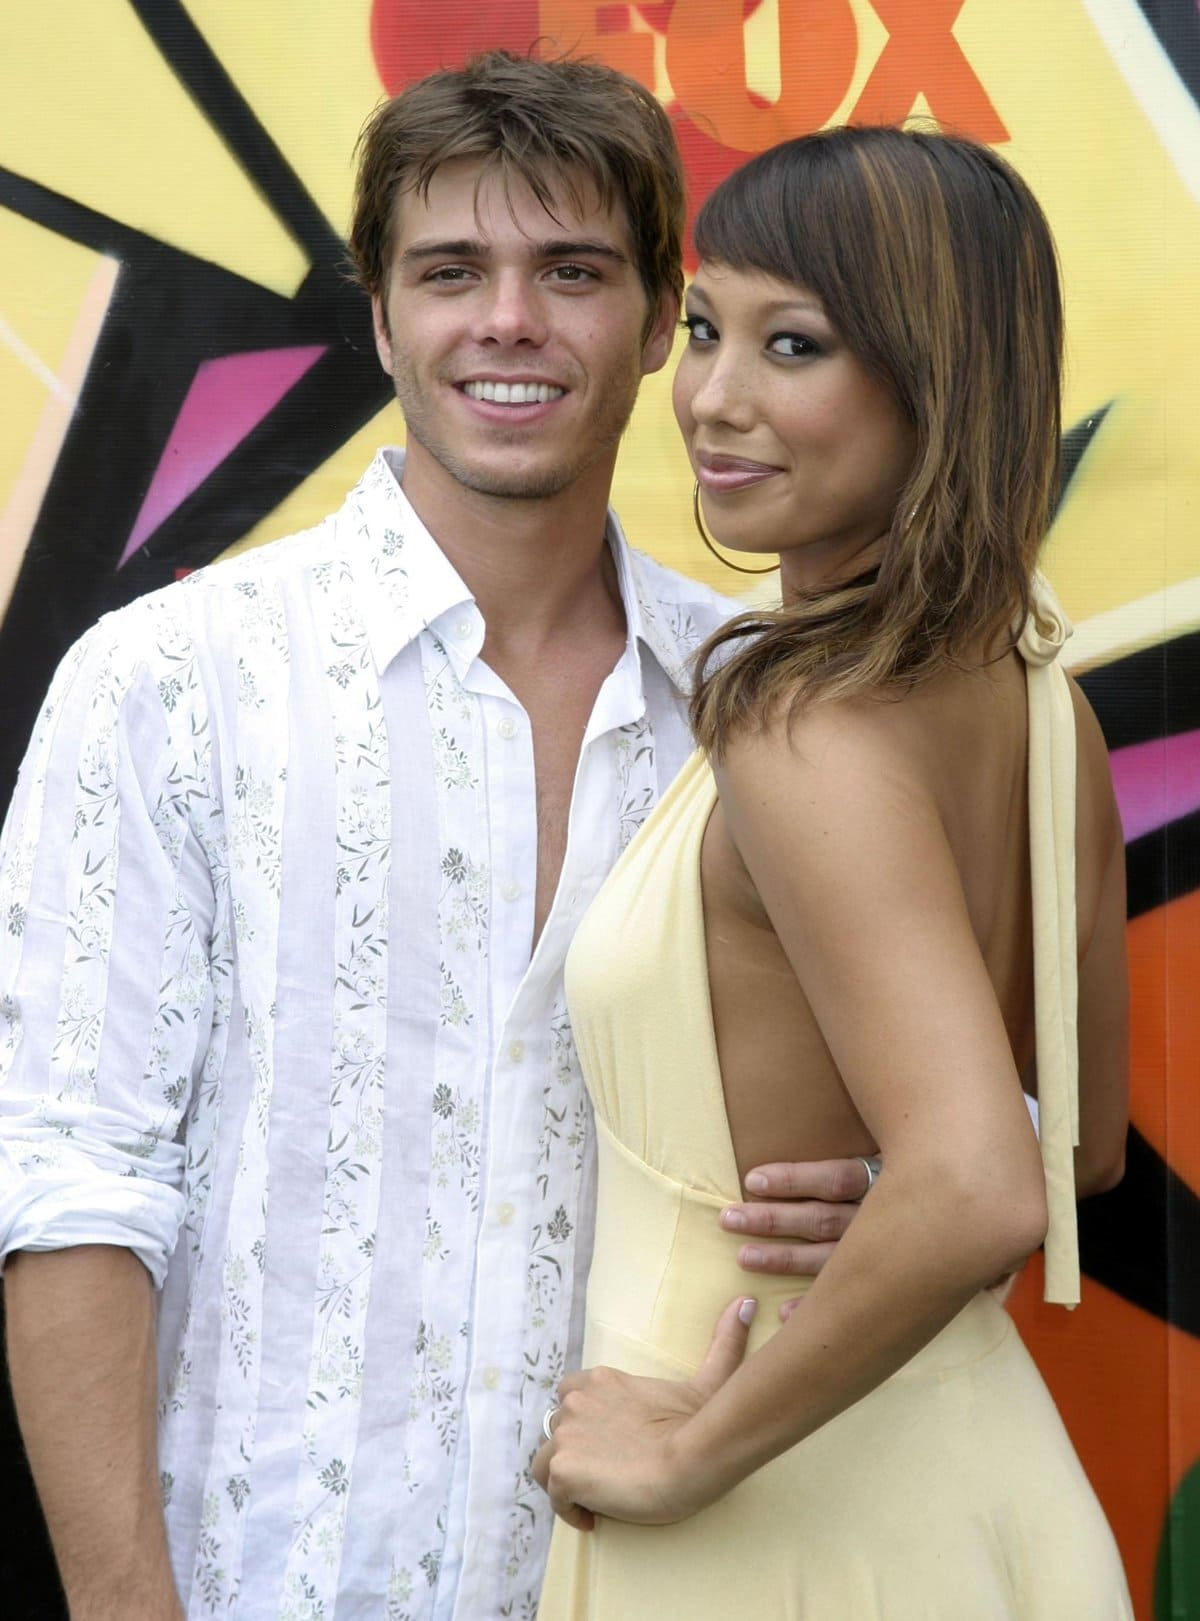 Actor Mathew Lawrence and his girlfriend Cheryl Burke at the 2007 Teen Choice Awards